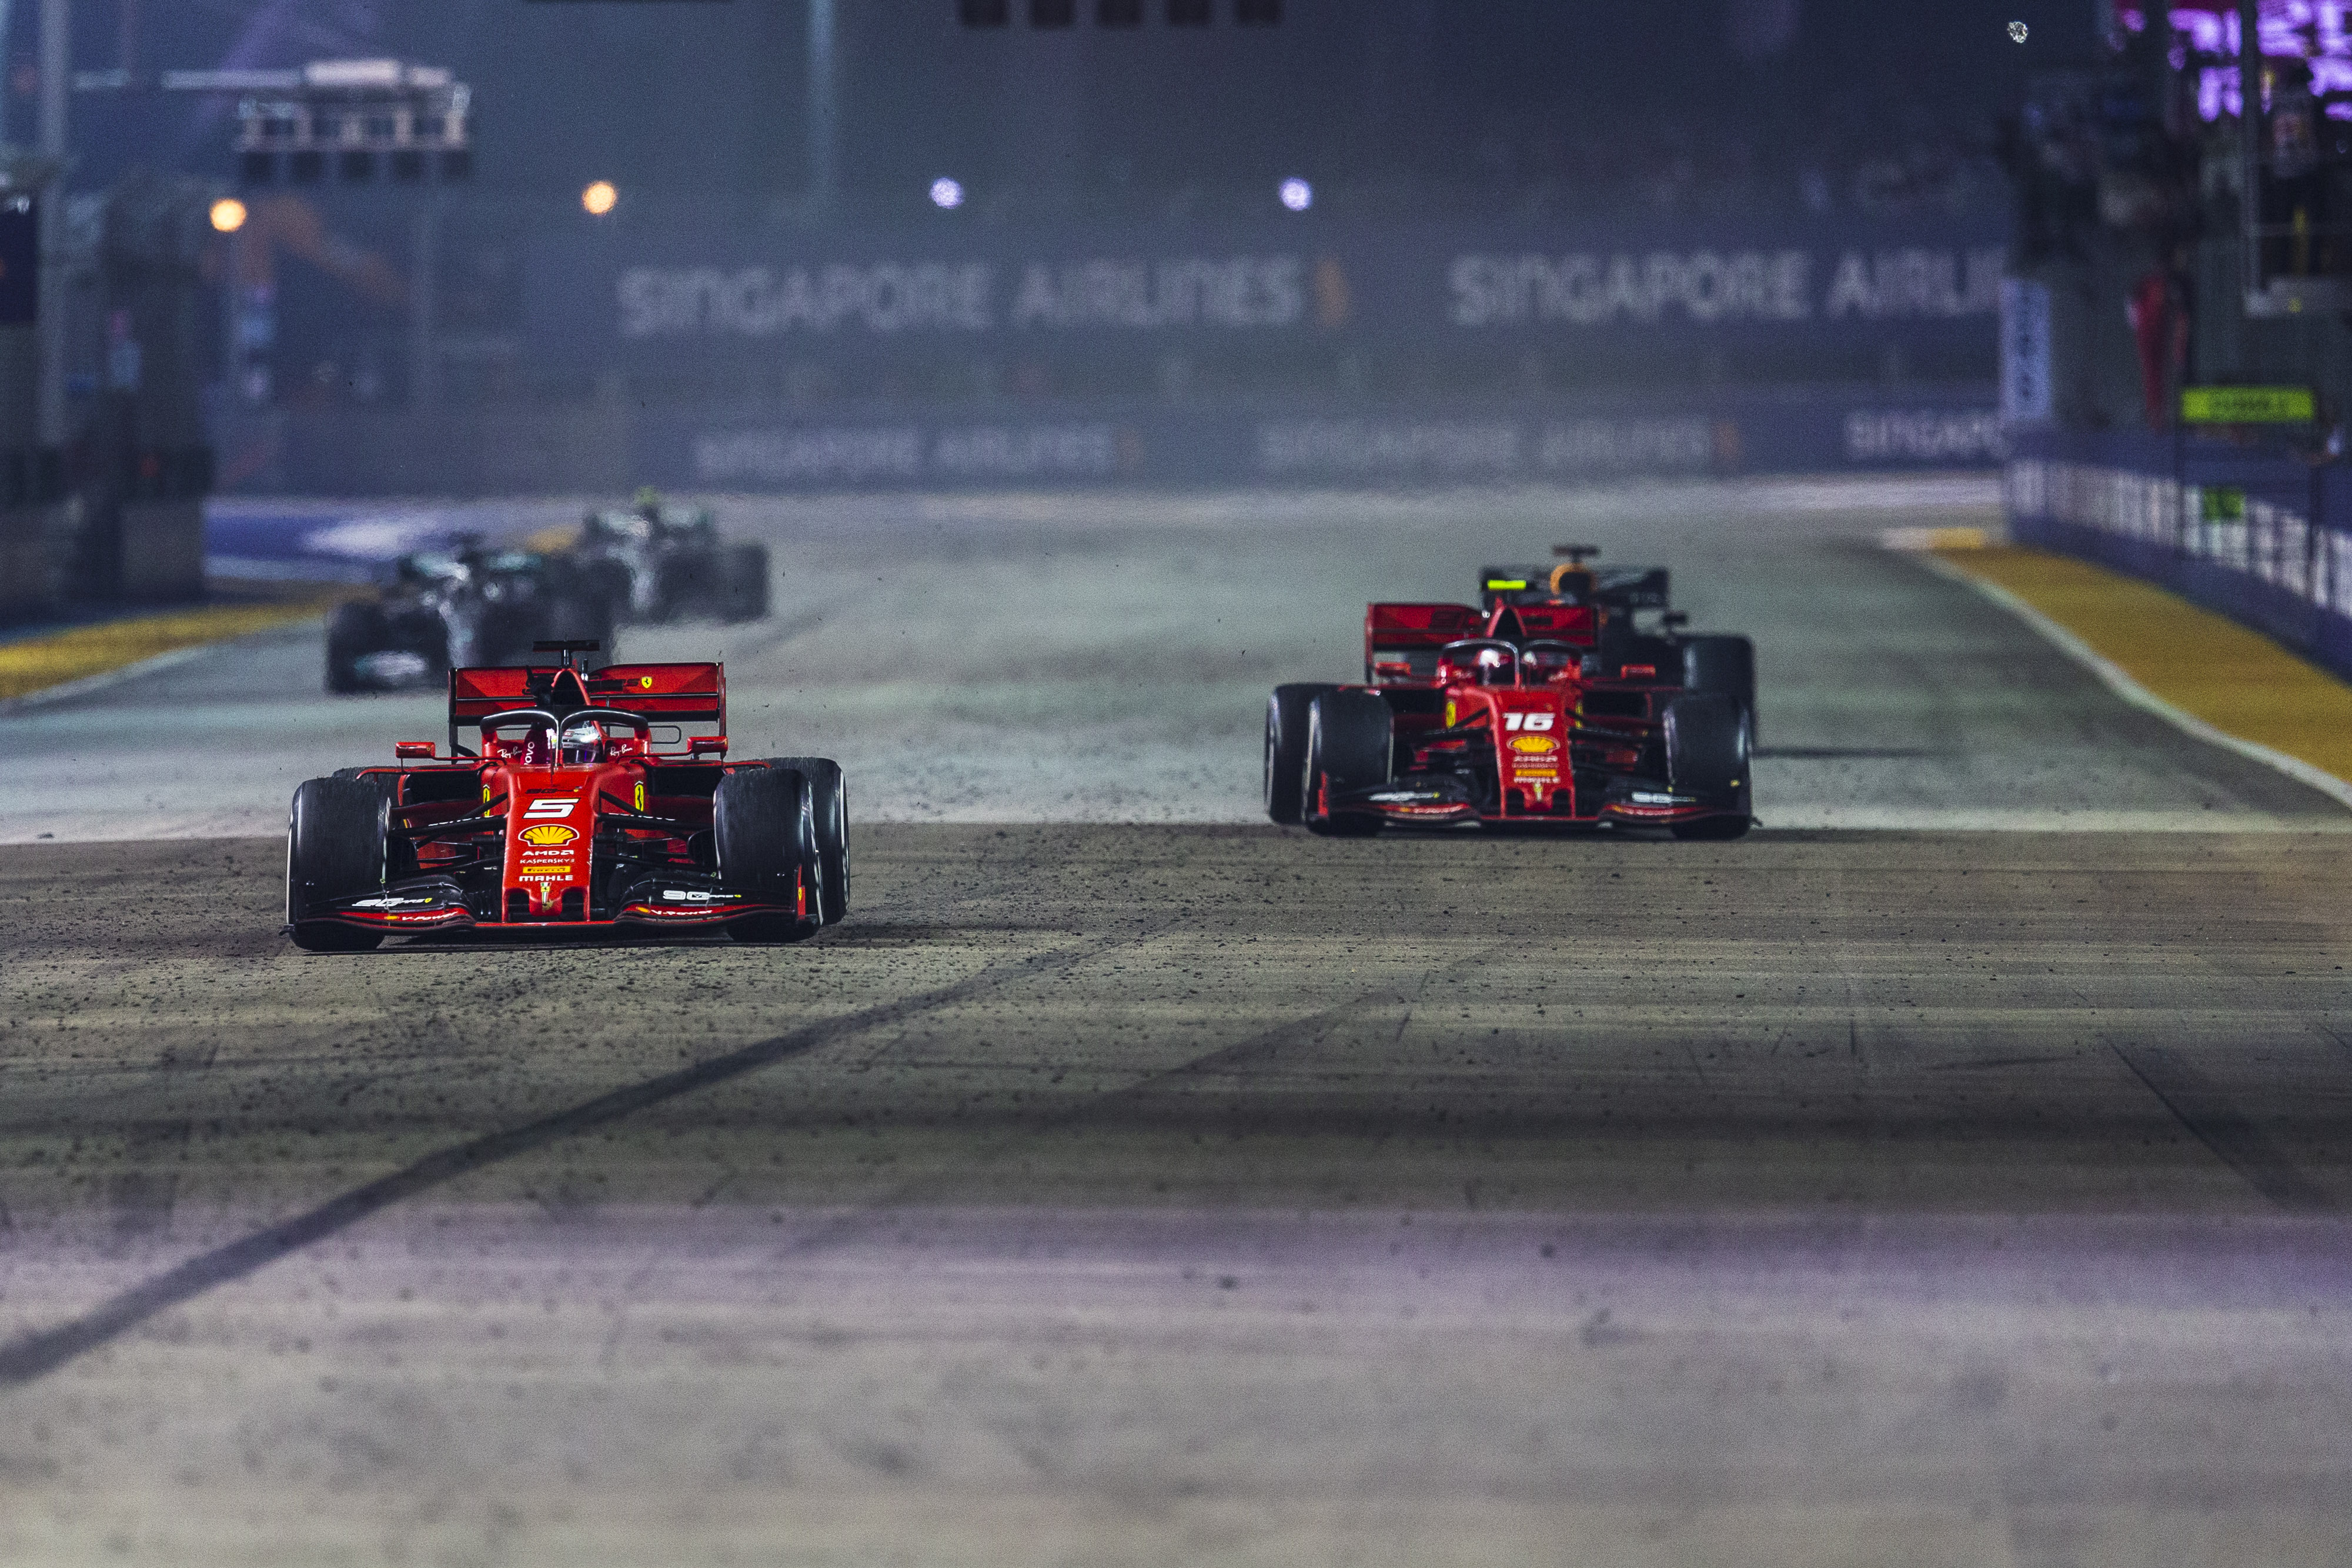 Ferrari considered giving Leclerc Singapore win